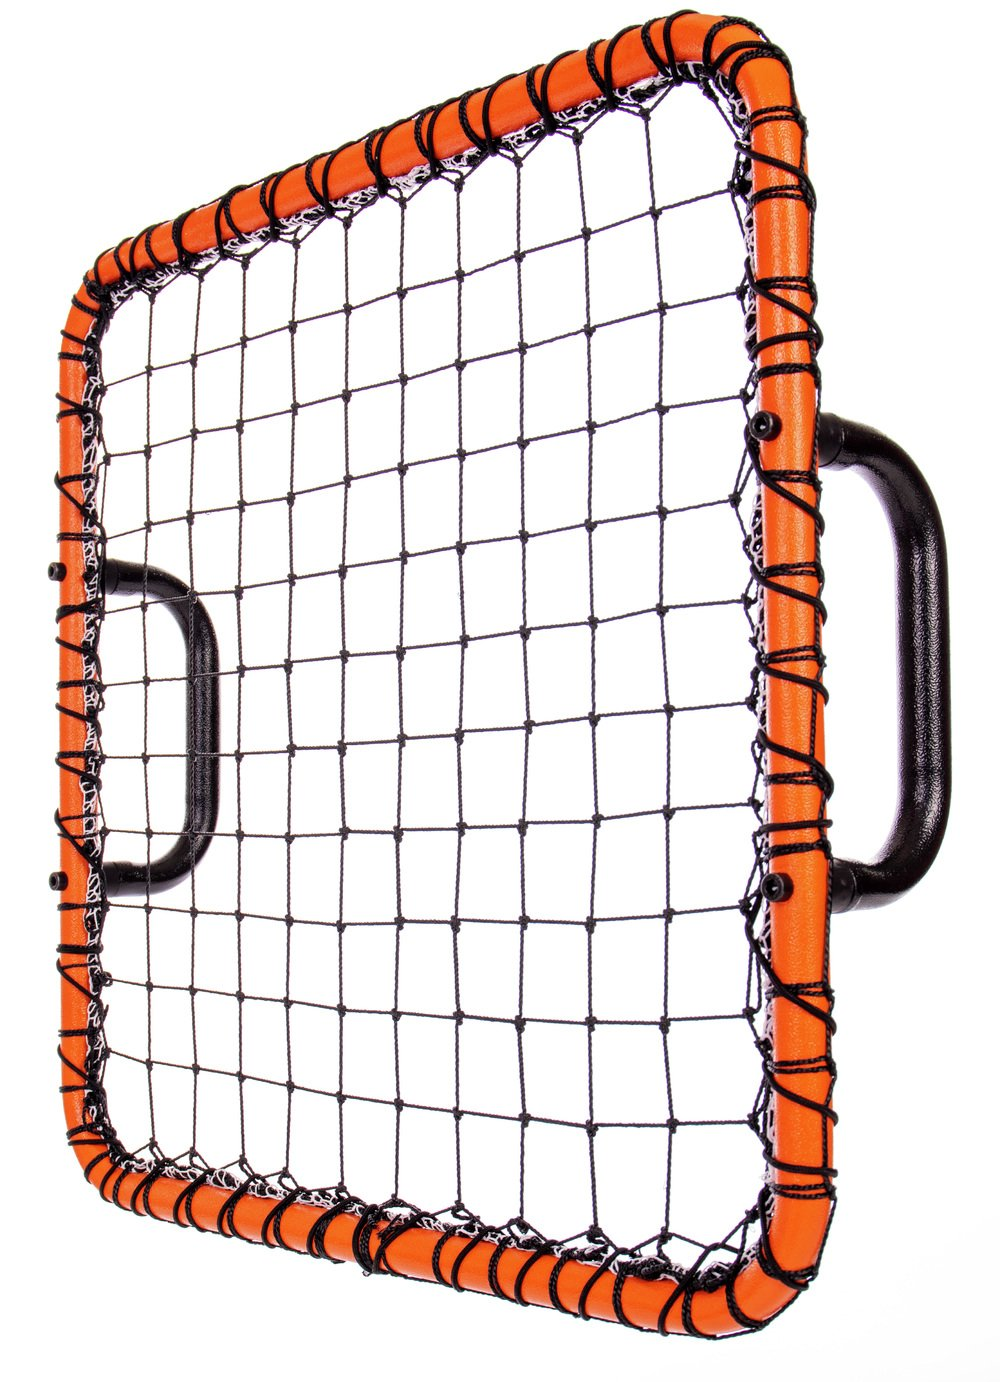 Football Flick Urban Skills Training Handheld Rebounder